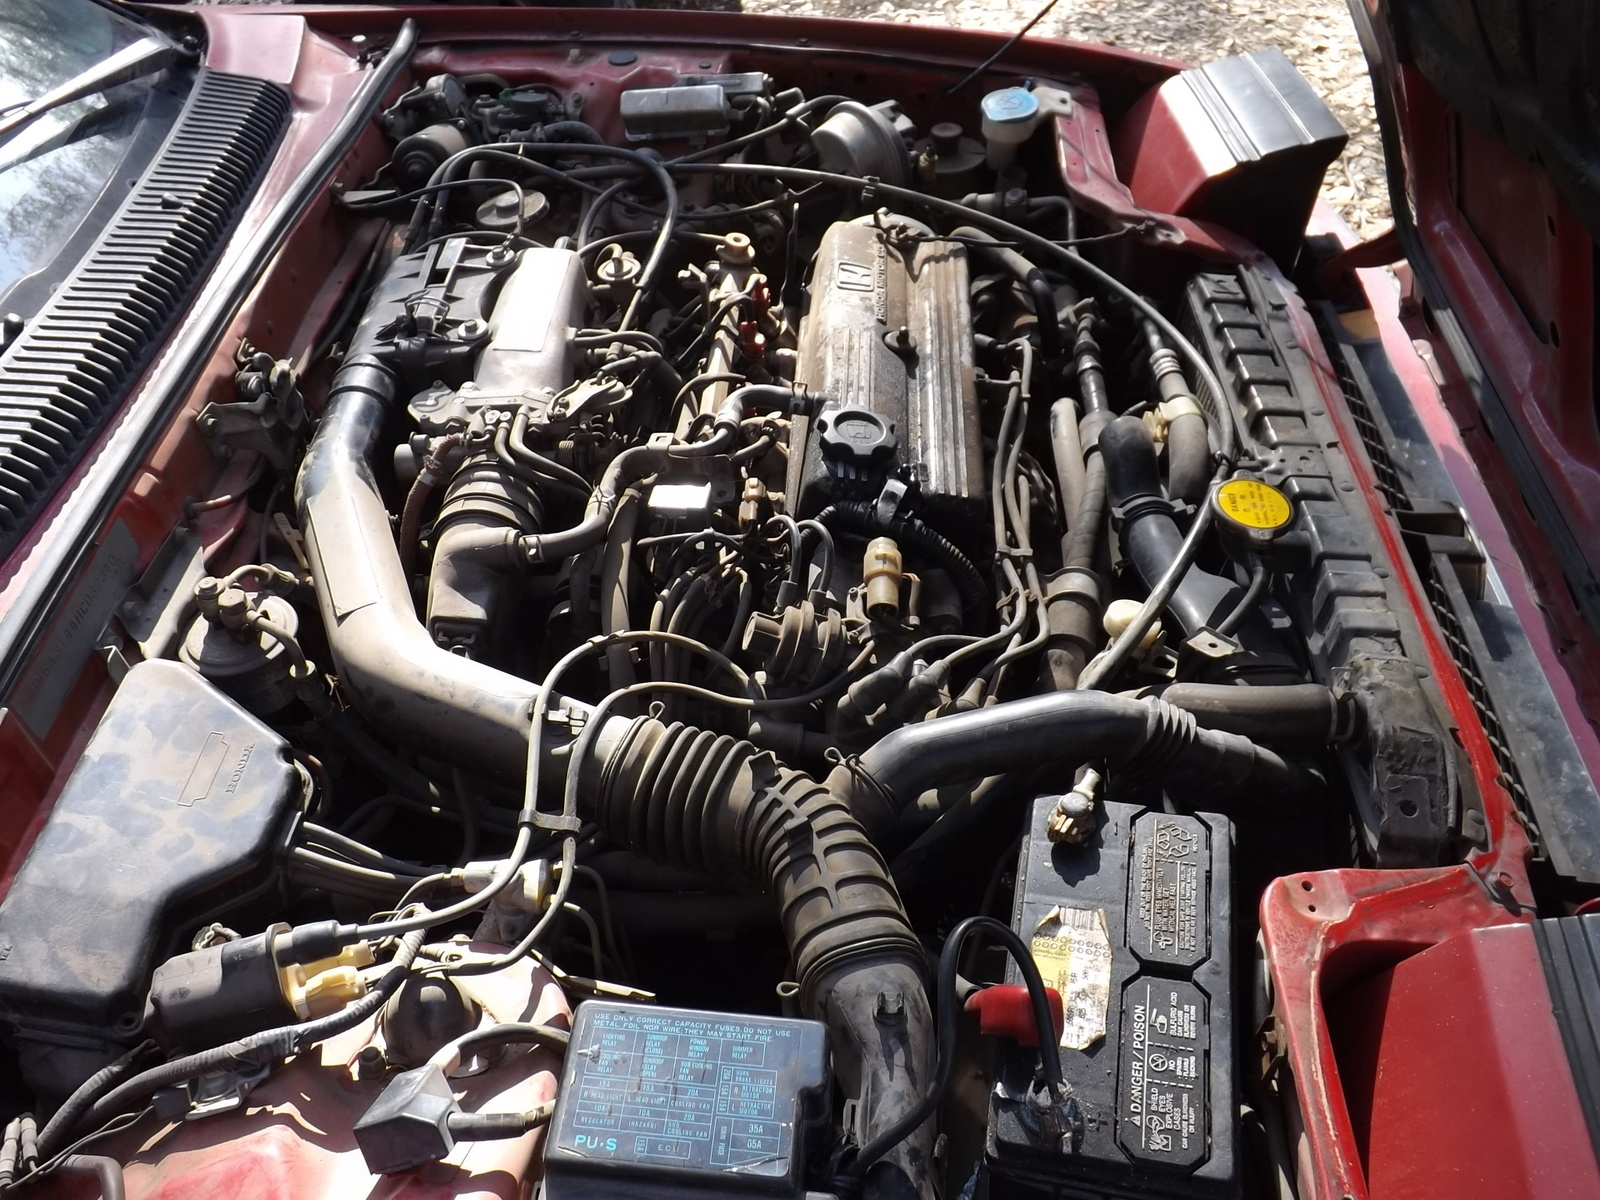 Got a 87 honda prelude si engines hesitates bad on slight load up hill and  wont rev past 2000 rpms changed spark plugs and fuel filter and now wont  even ...